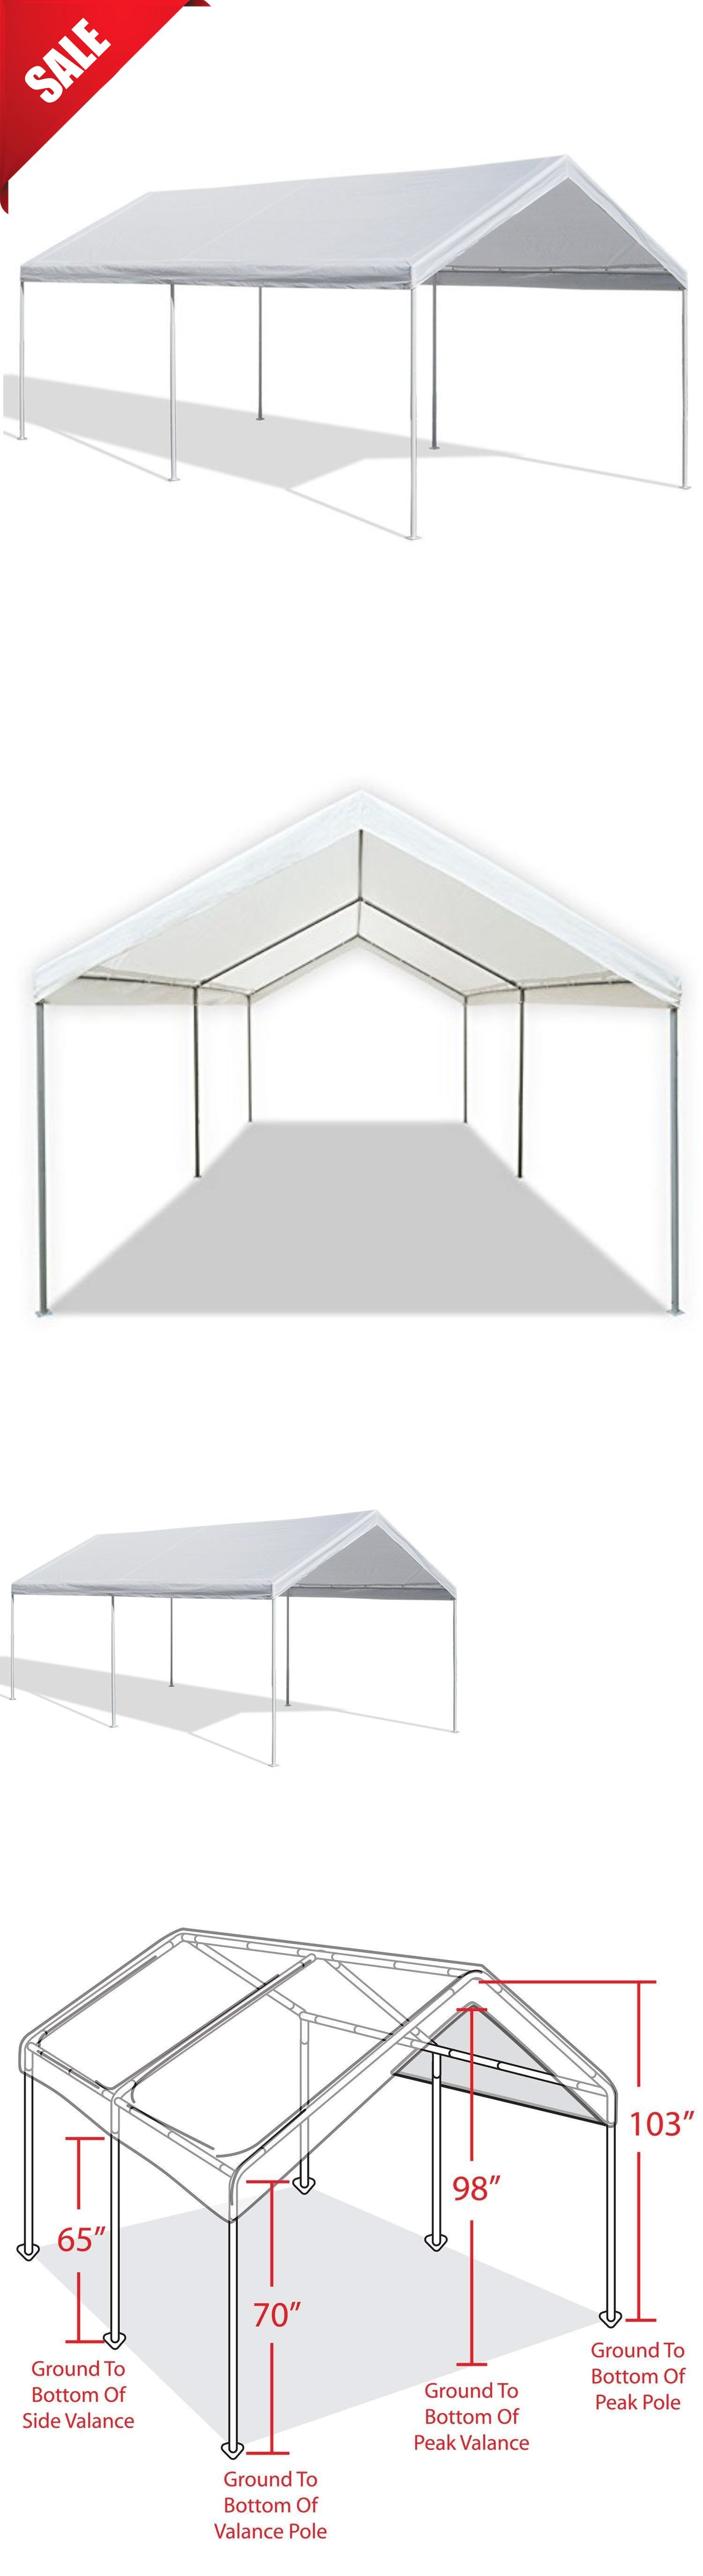 Awnings and Canopies 180992 Caravan Canopy Tent Car Port